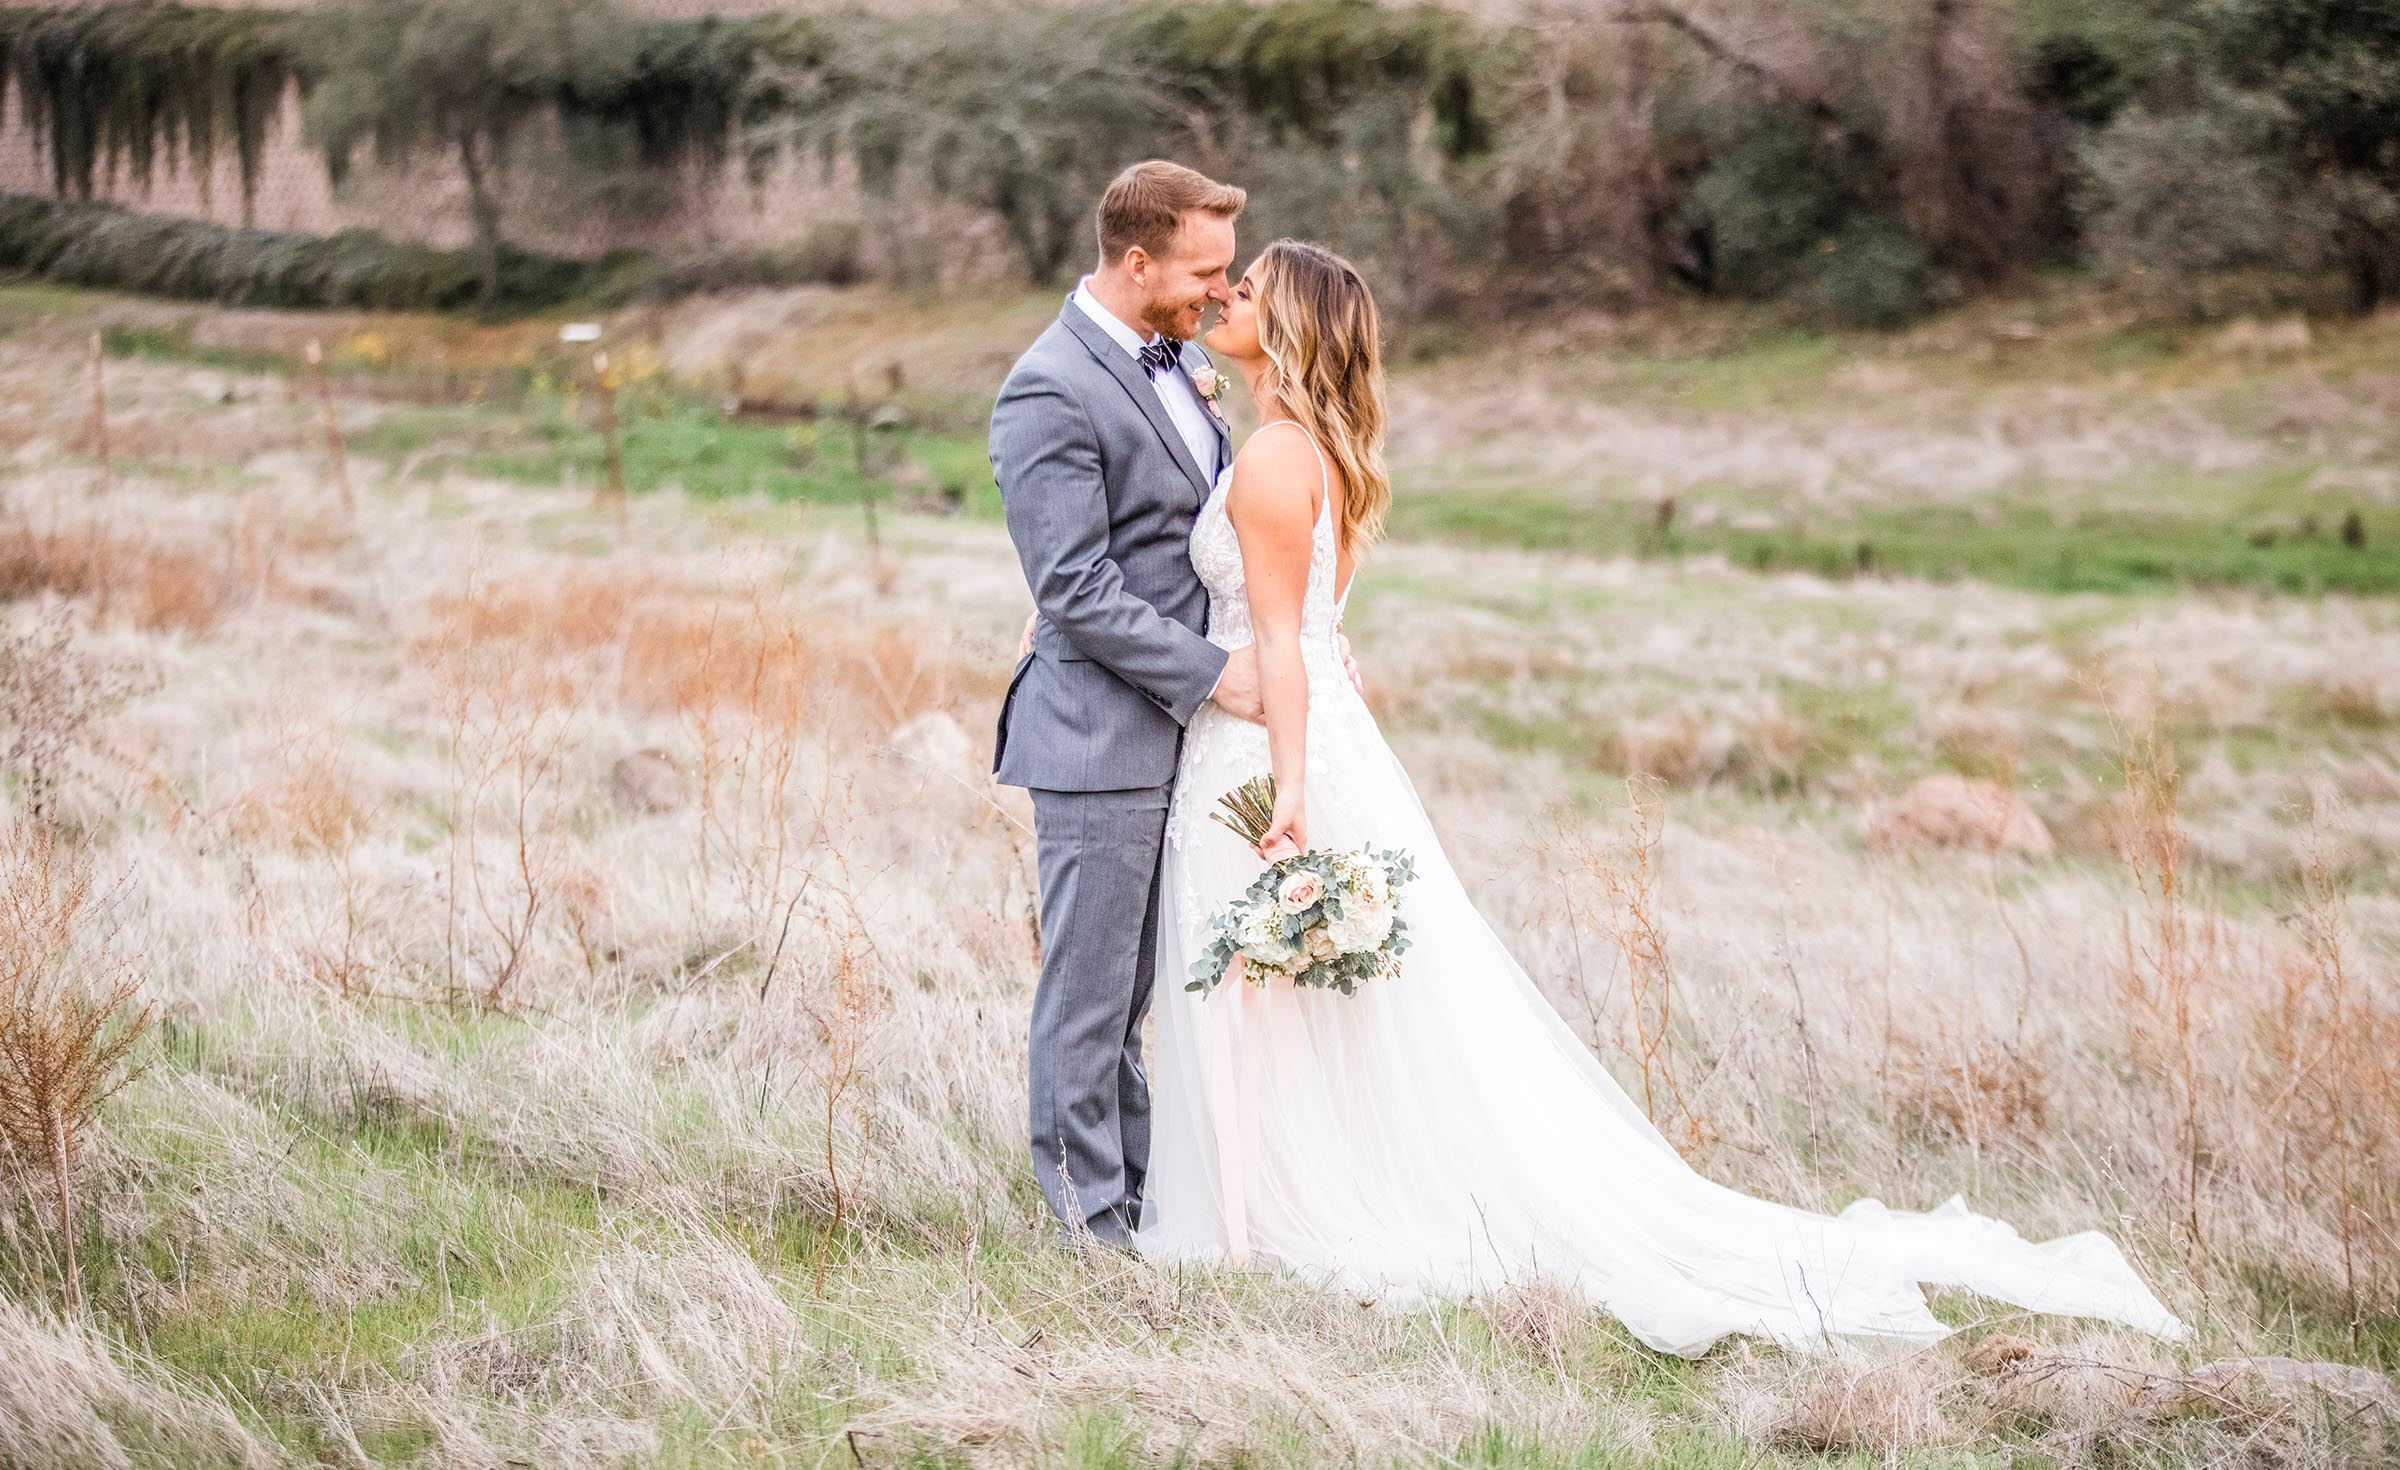 Bride and Groom posing for photos - Union Brick - Roseville, California, Placer County - Wedgewood Weddings